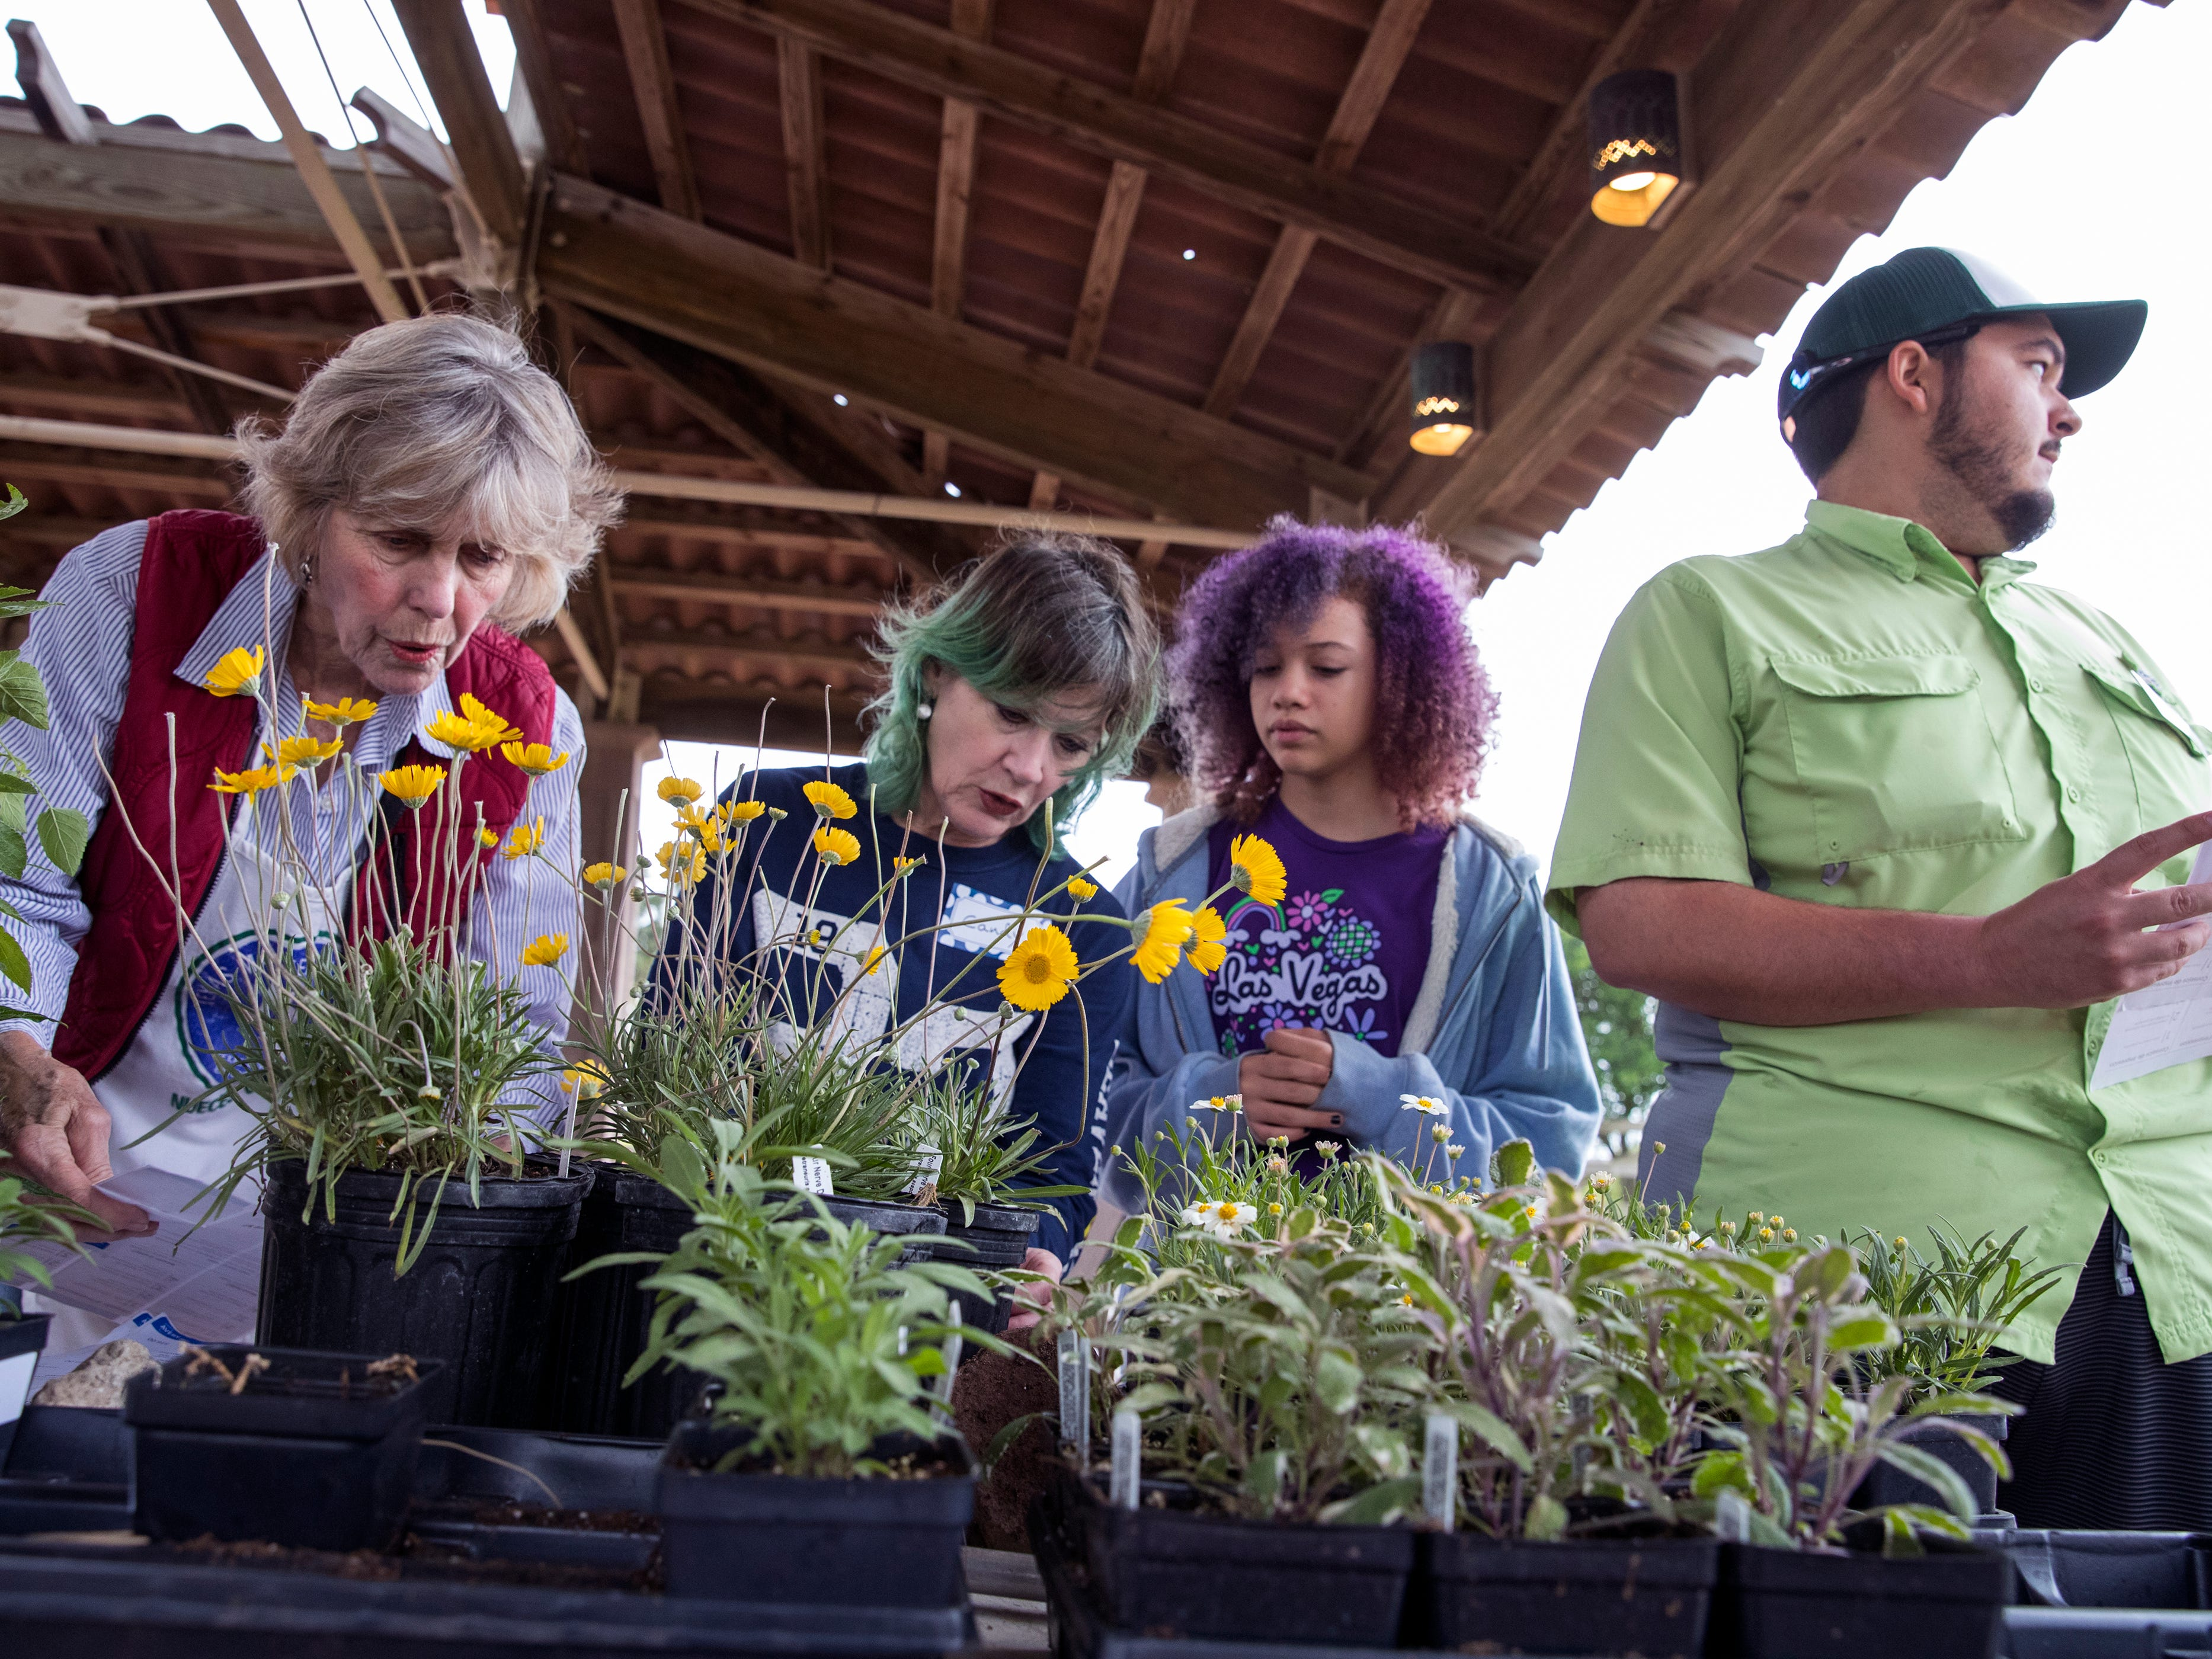 Volunteers Karen Easton (from left), Candy Tidmore, Rory Diaz, 12, and Brandon Rodriguez, a Texas A&M University-Corpus Christi student, price plants on Thursday, April 4, 2019 in preparation for the annual Big Bloom which is Saturday at the South Texas Botanical Gardens & Nature Center. Thousands of varieties of plants have been ordered from wholesalers for the event. Nueces Master Gardeners will be on hand to help visitors pick their plants and answer care questions.